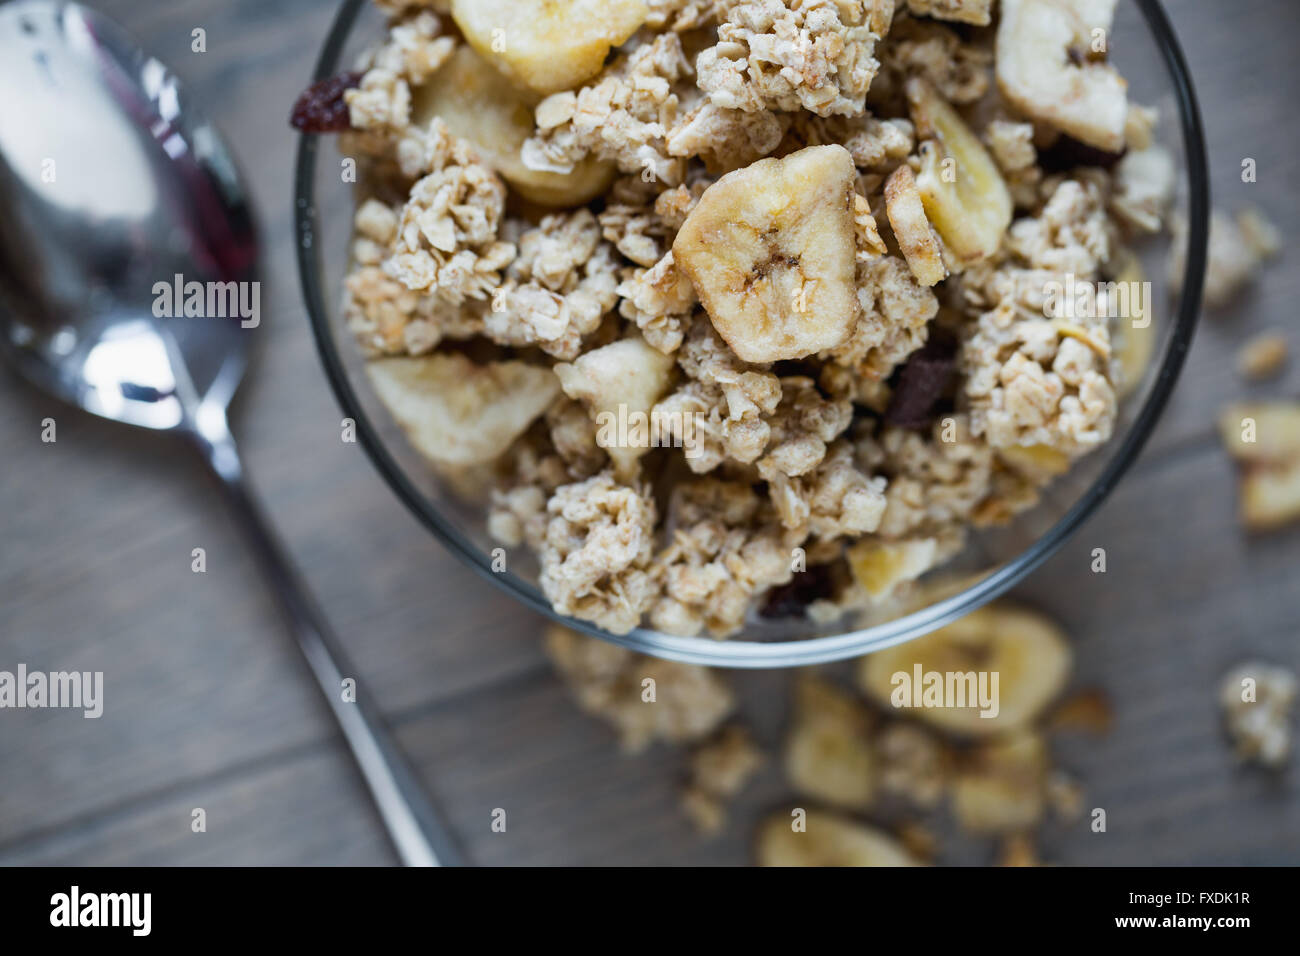 Bowl of granola with banana on wooden table. Stock Photo